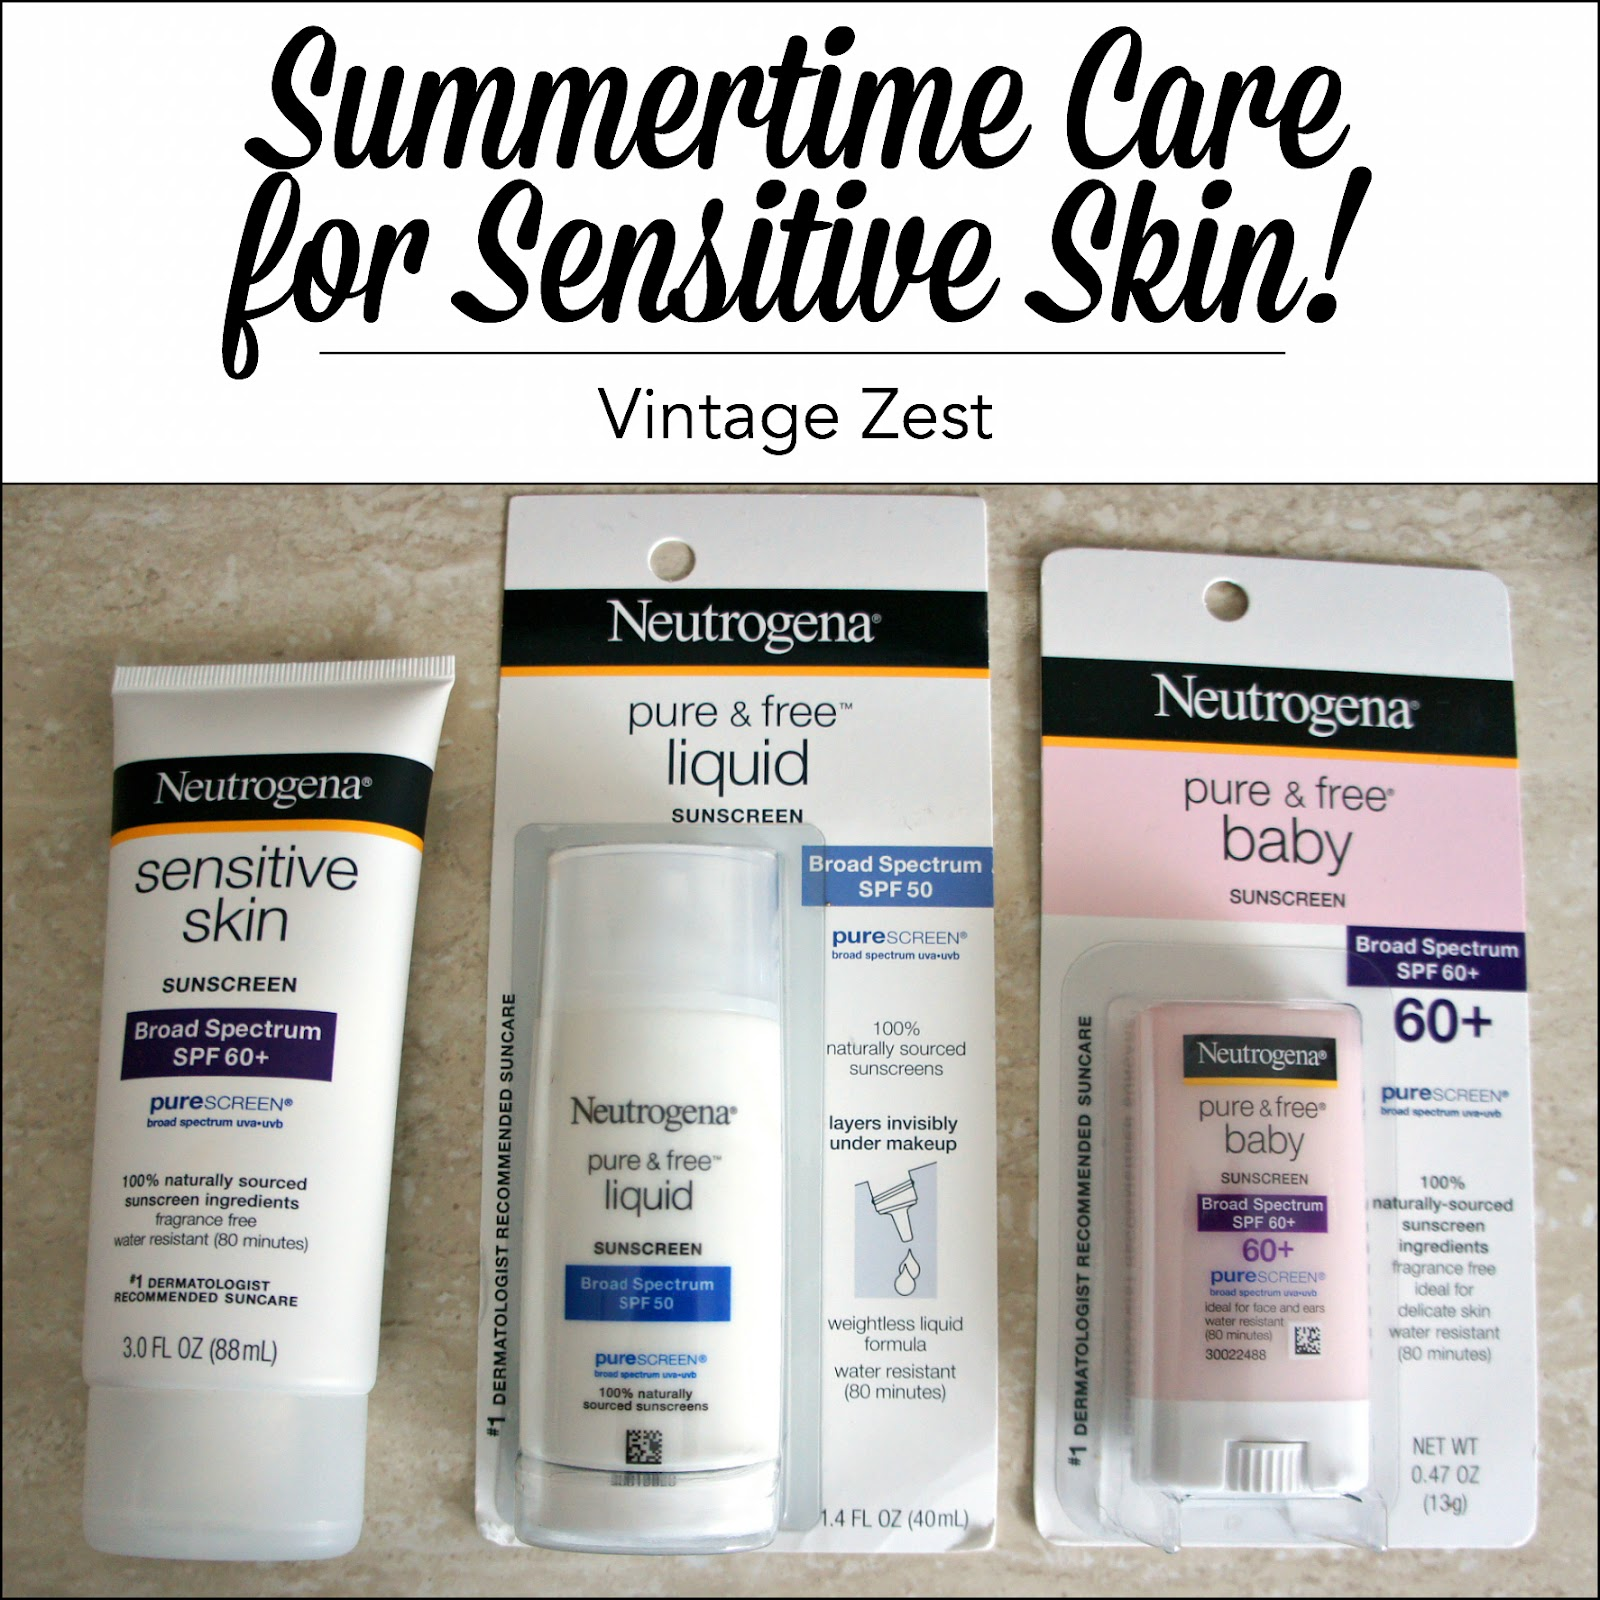 Summertime Skin Care for Sensitive Skin on Diane's Vintage Zest!  #ad #ChooseSkinHealth #IC